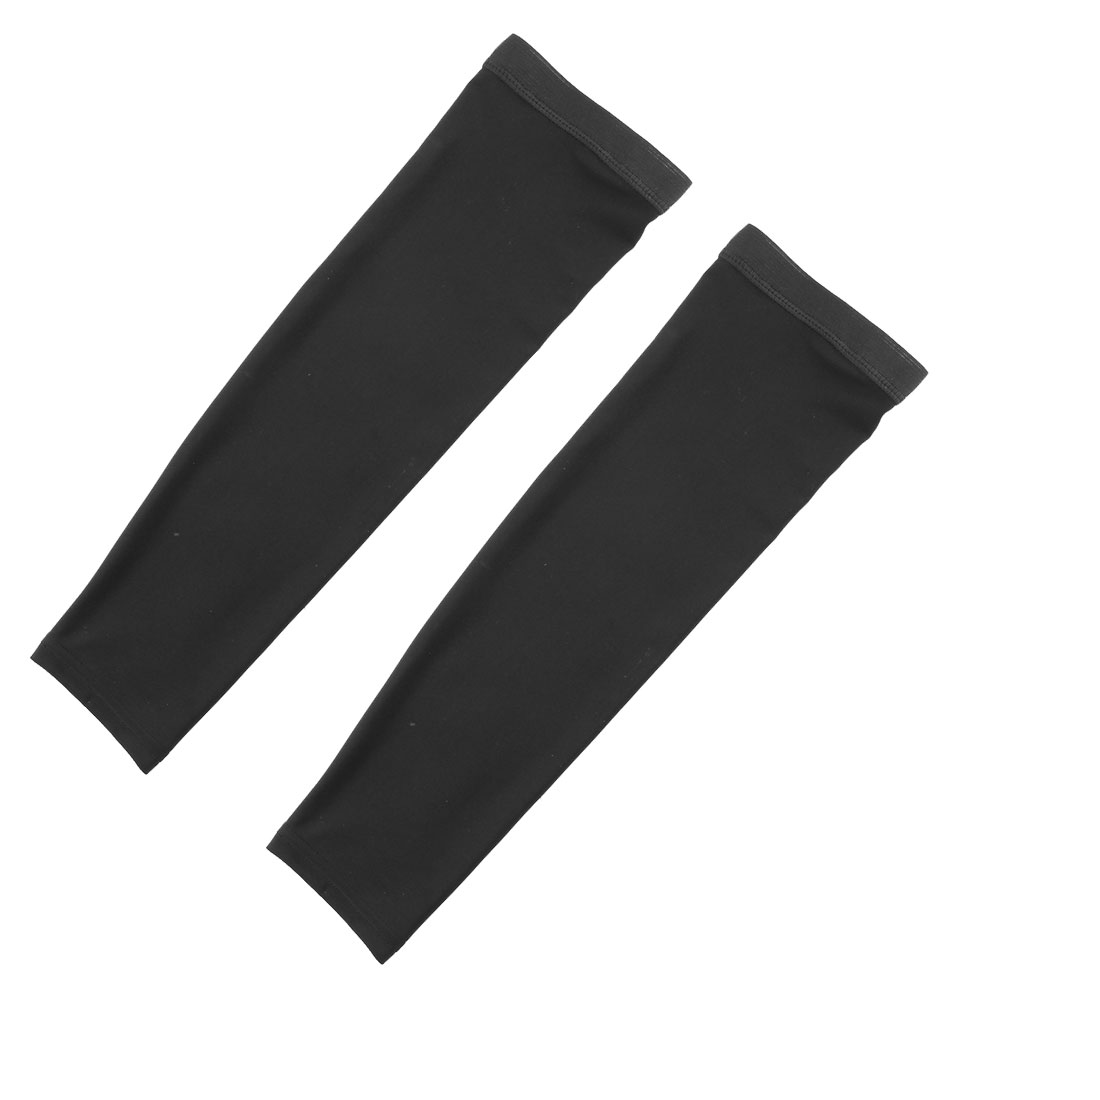 Outdoor Riding Polyester Anti-UV Stretchy Arm Sleeves Cover Protection Decor Black Size XL Pair